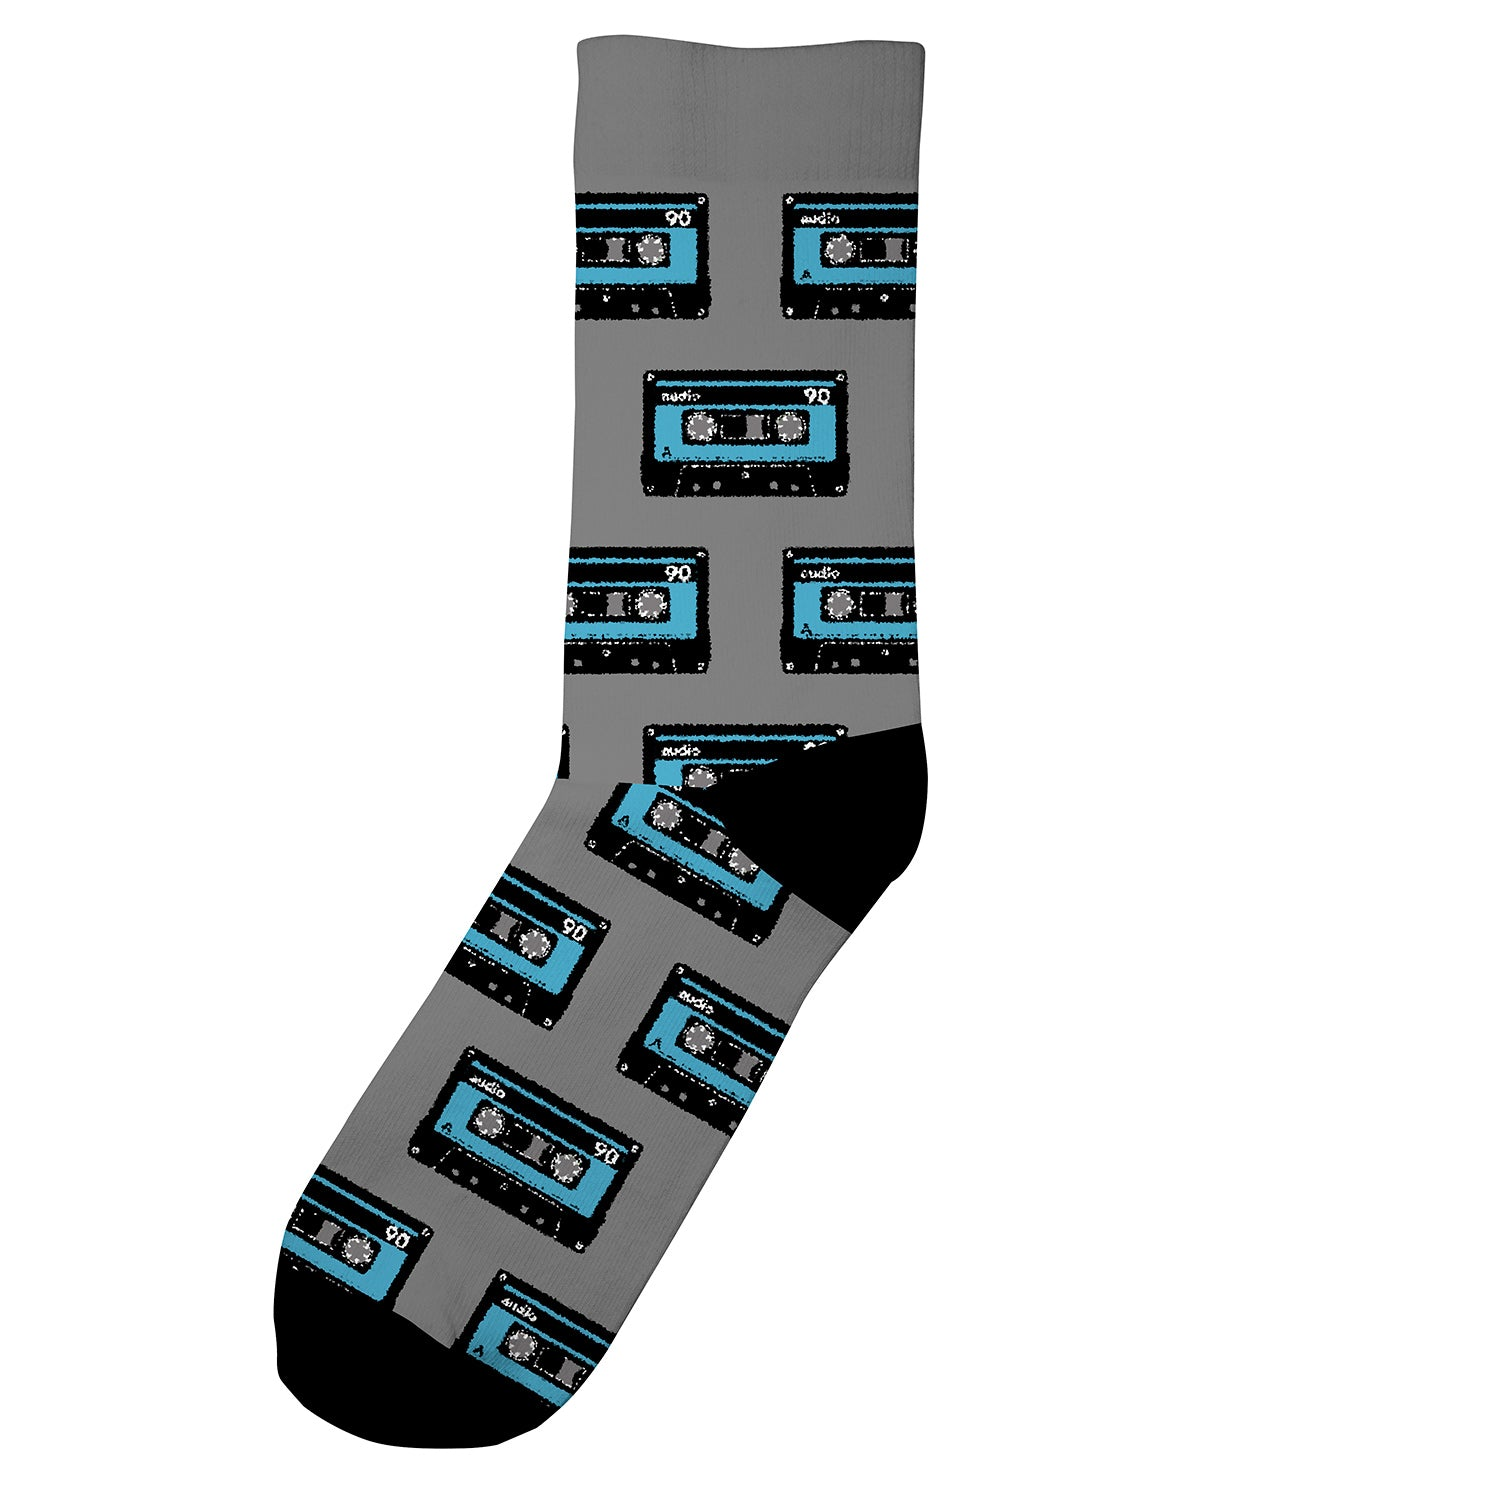 DEDICATED Socks Sigtuna Tapes Grey